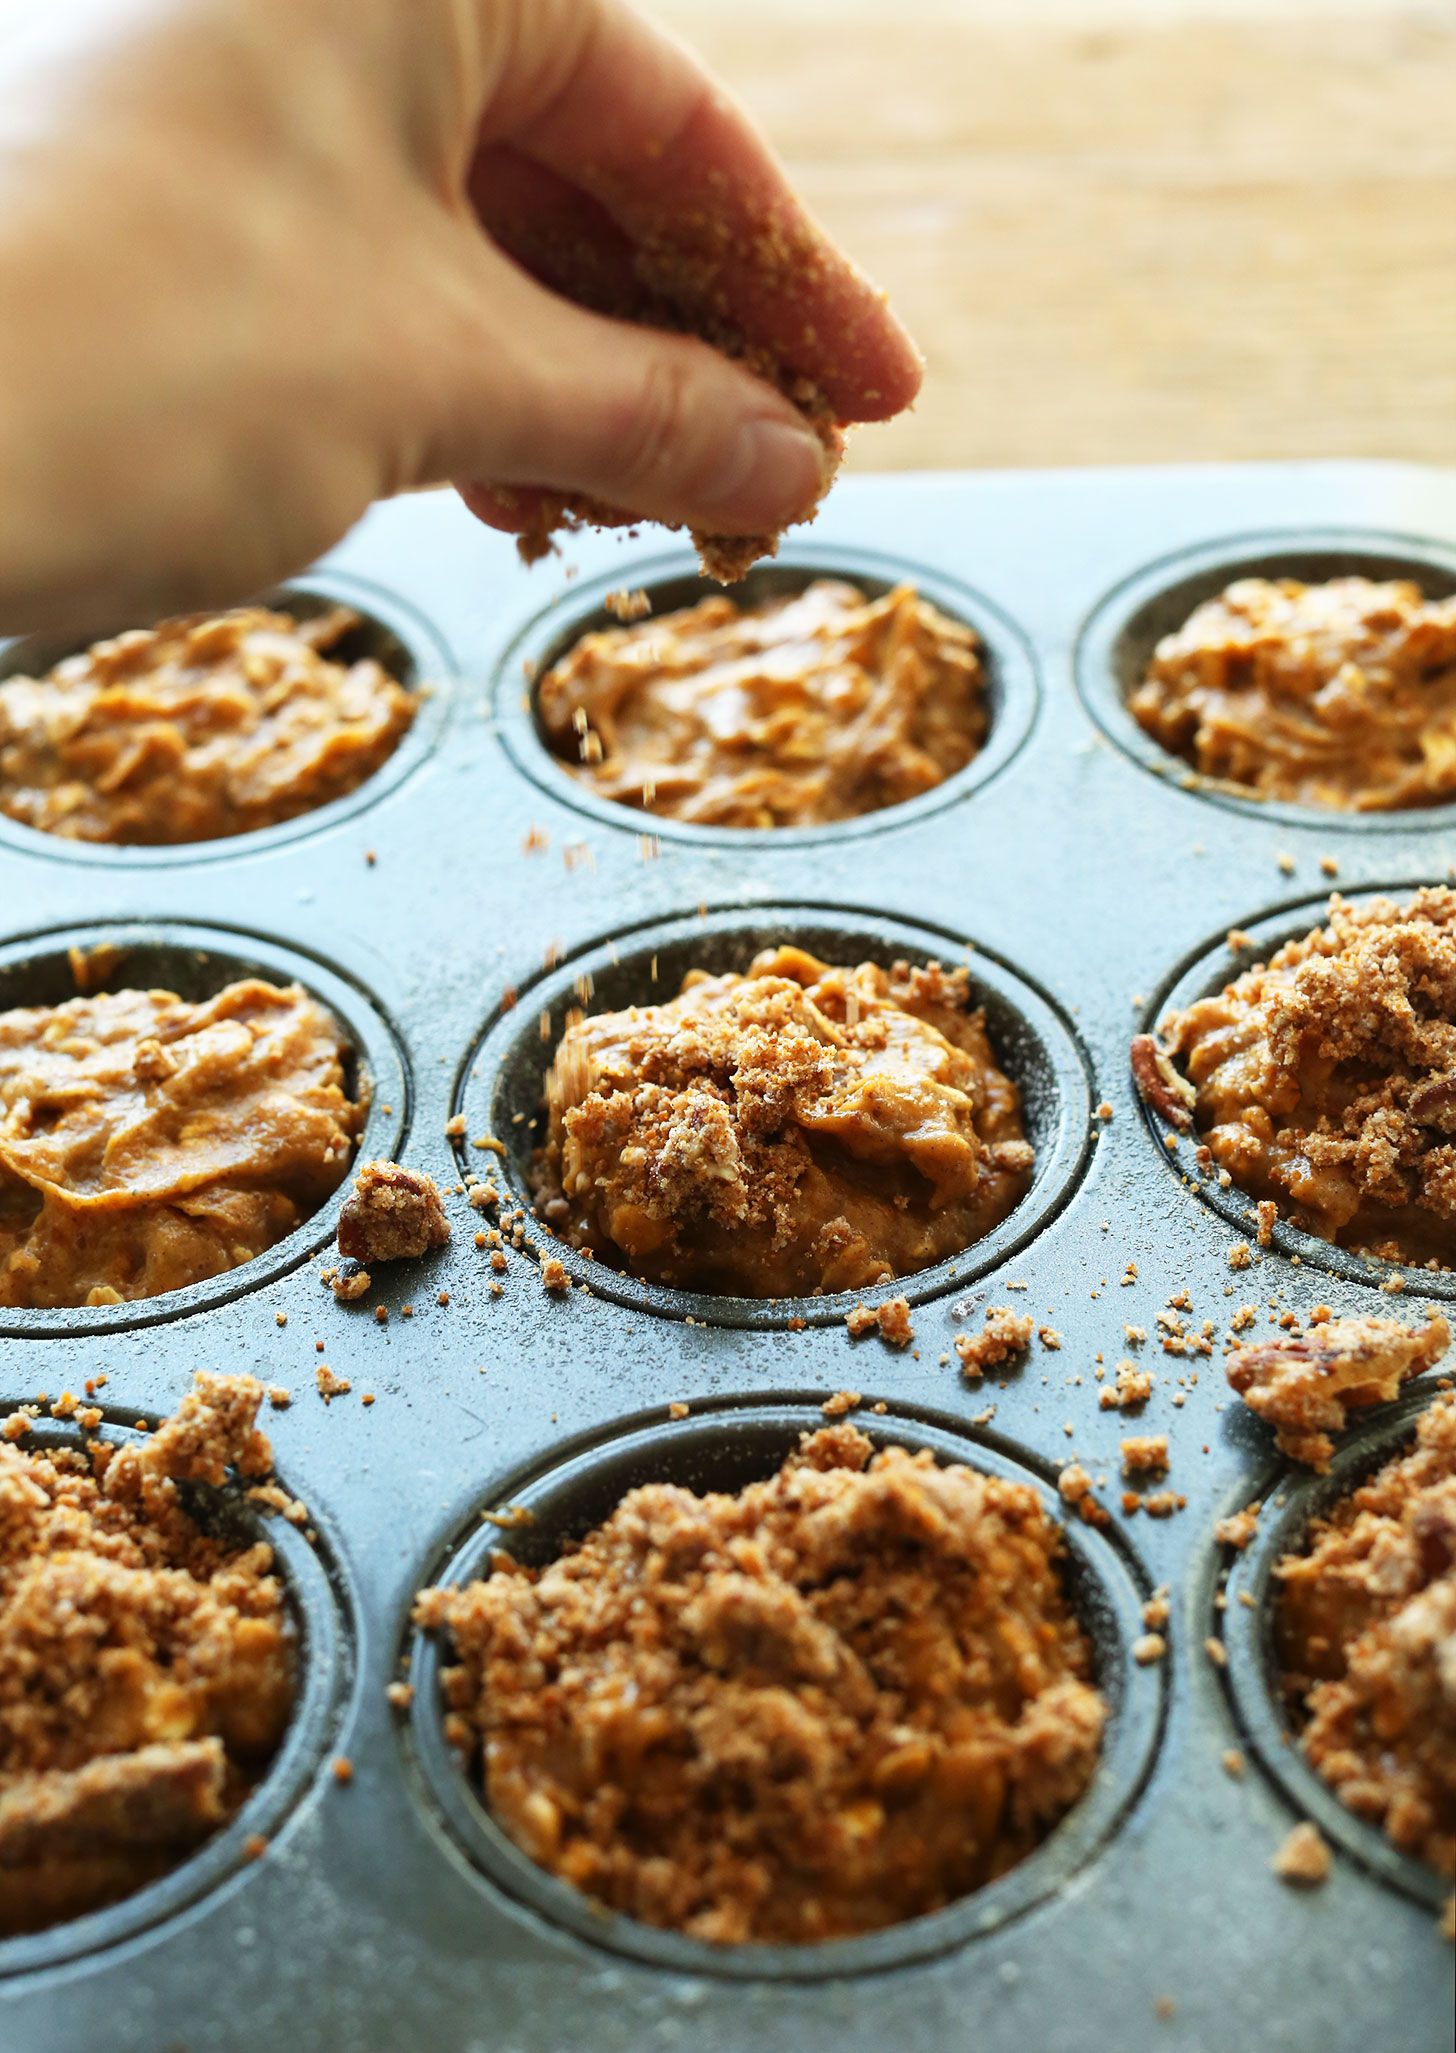 Sprinkling delicious Pecan Crumble Topping over gluten-free vegan Pumpkin Spices Muffins